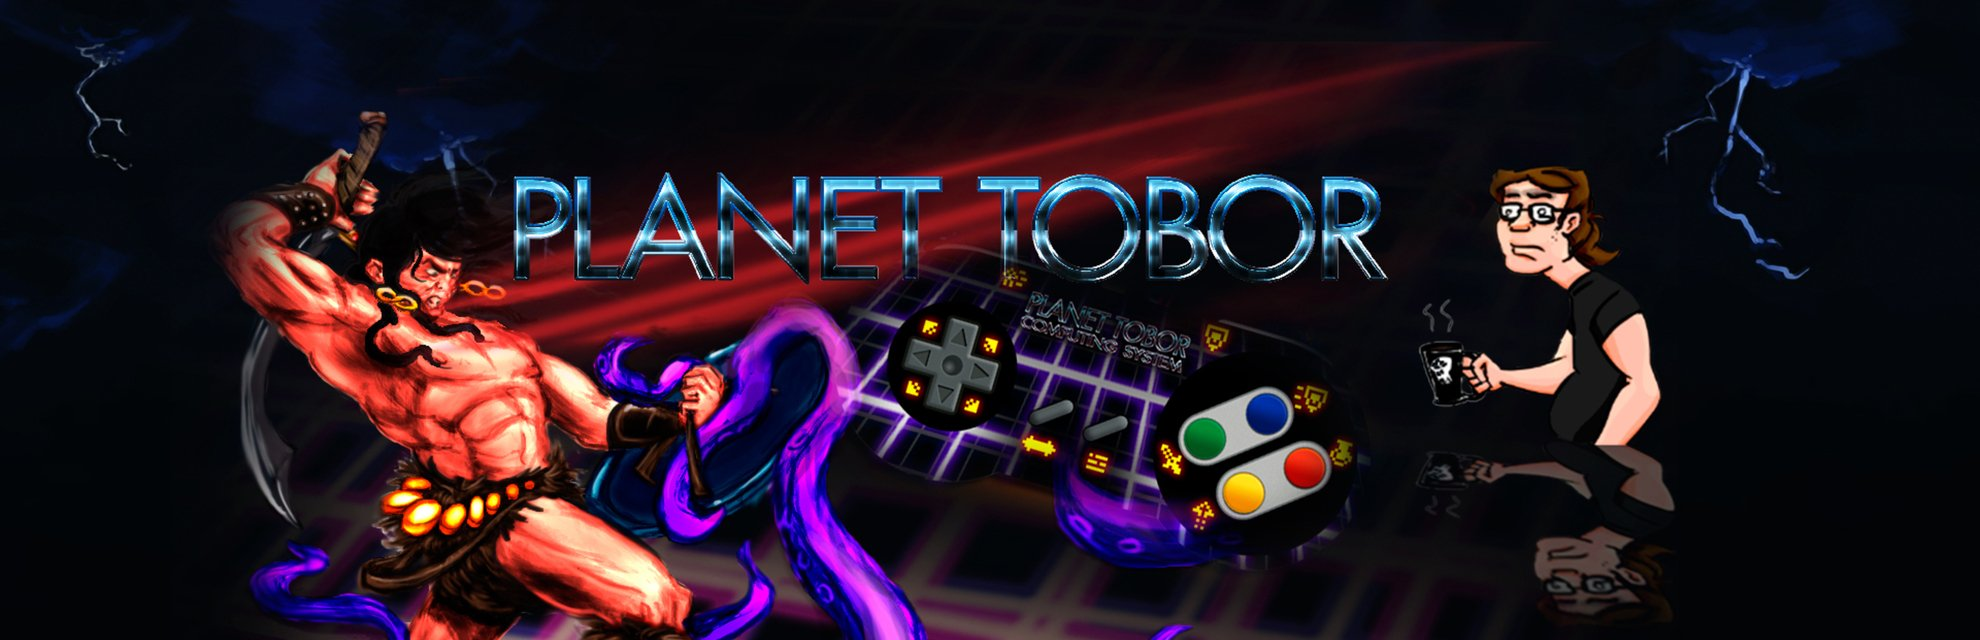 toborprime blog header photo